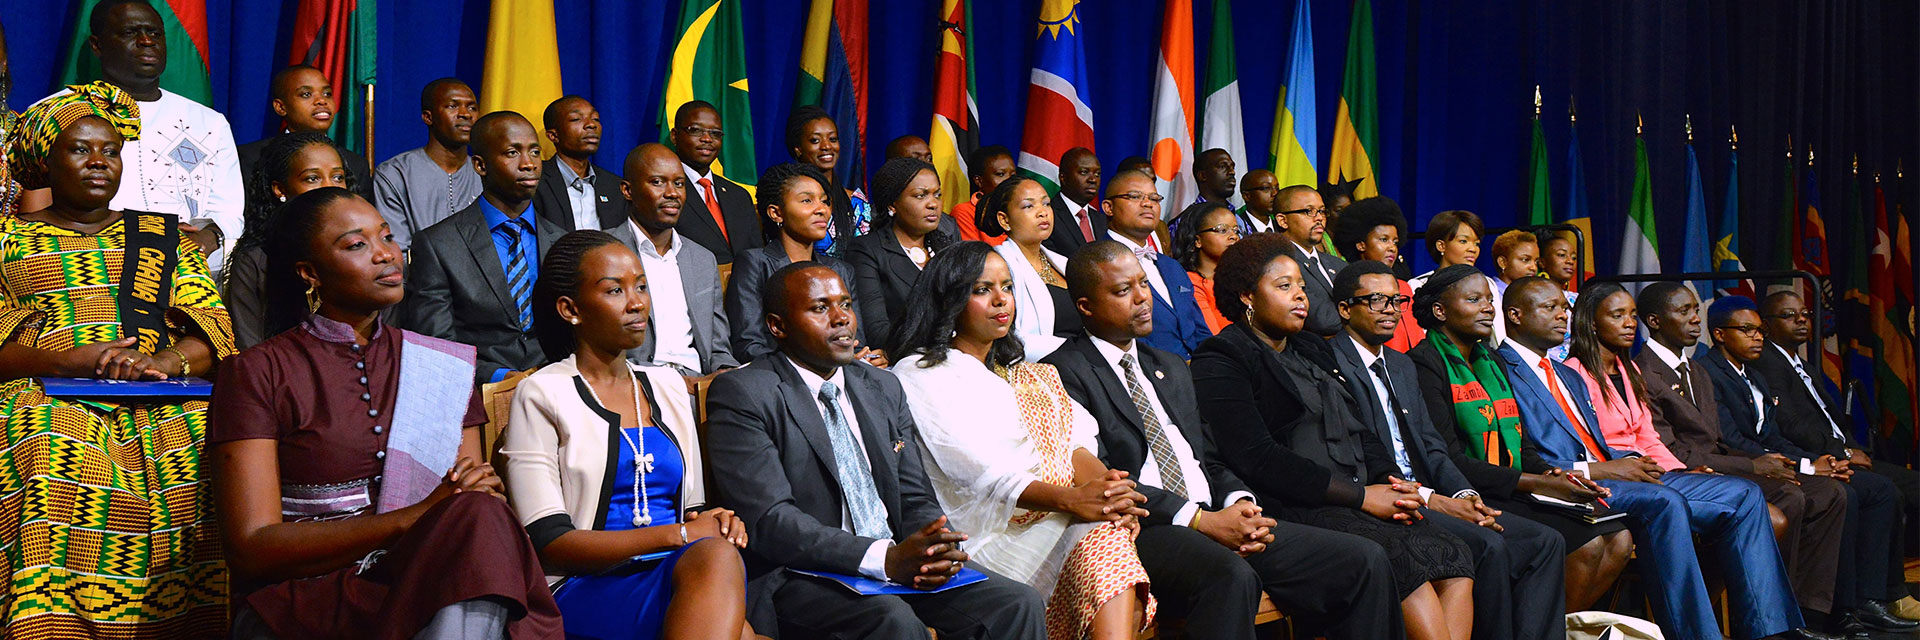 Apply for 2019 Mandela Washington Fellowship (Fully Funded to USA) Closes on October 10, 2018